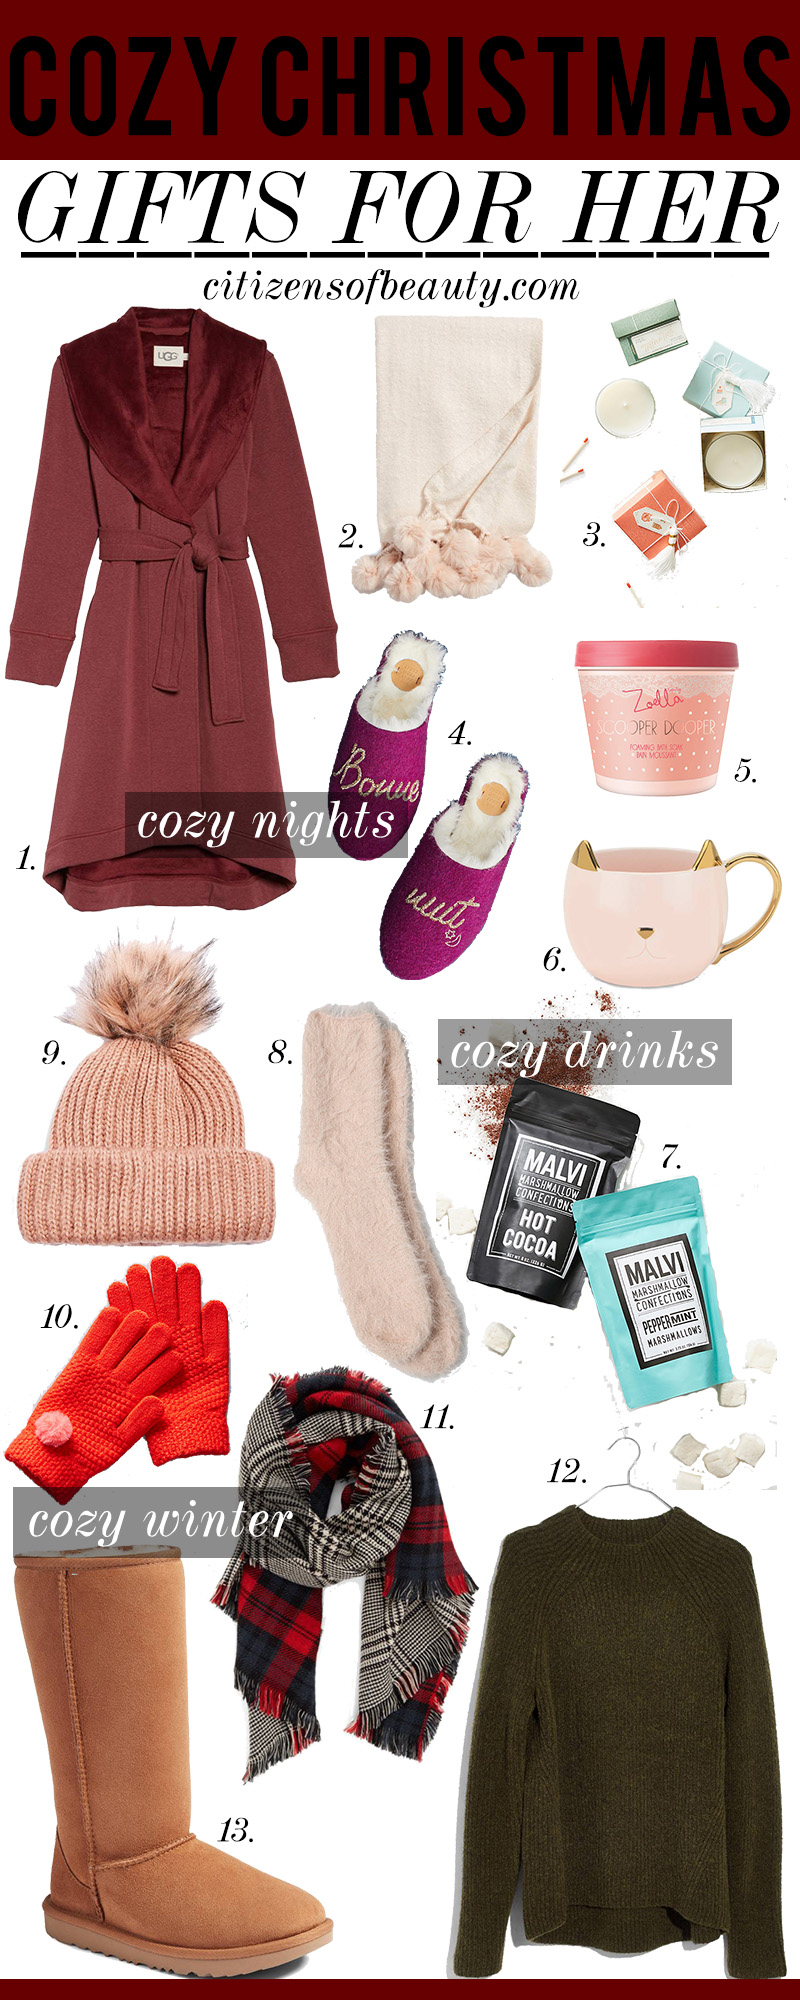 Most Wanted Cozy Christmas Gifts For Her Citizens Of Beauty